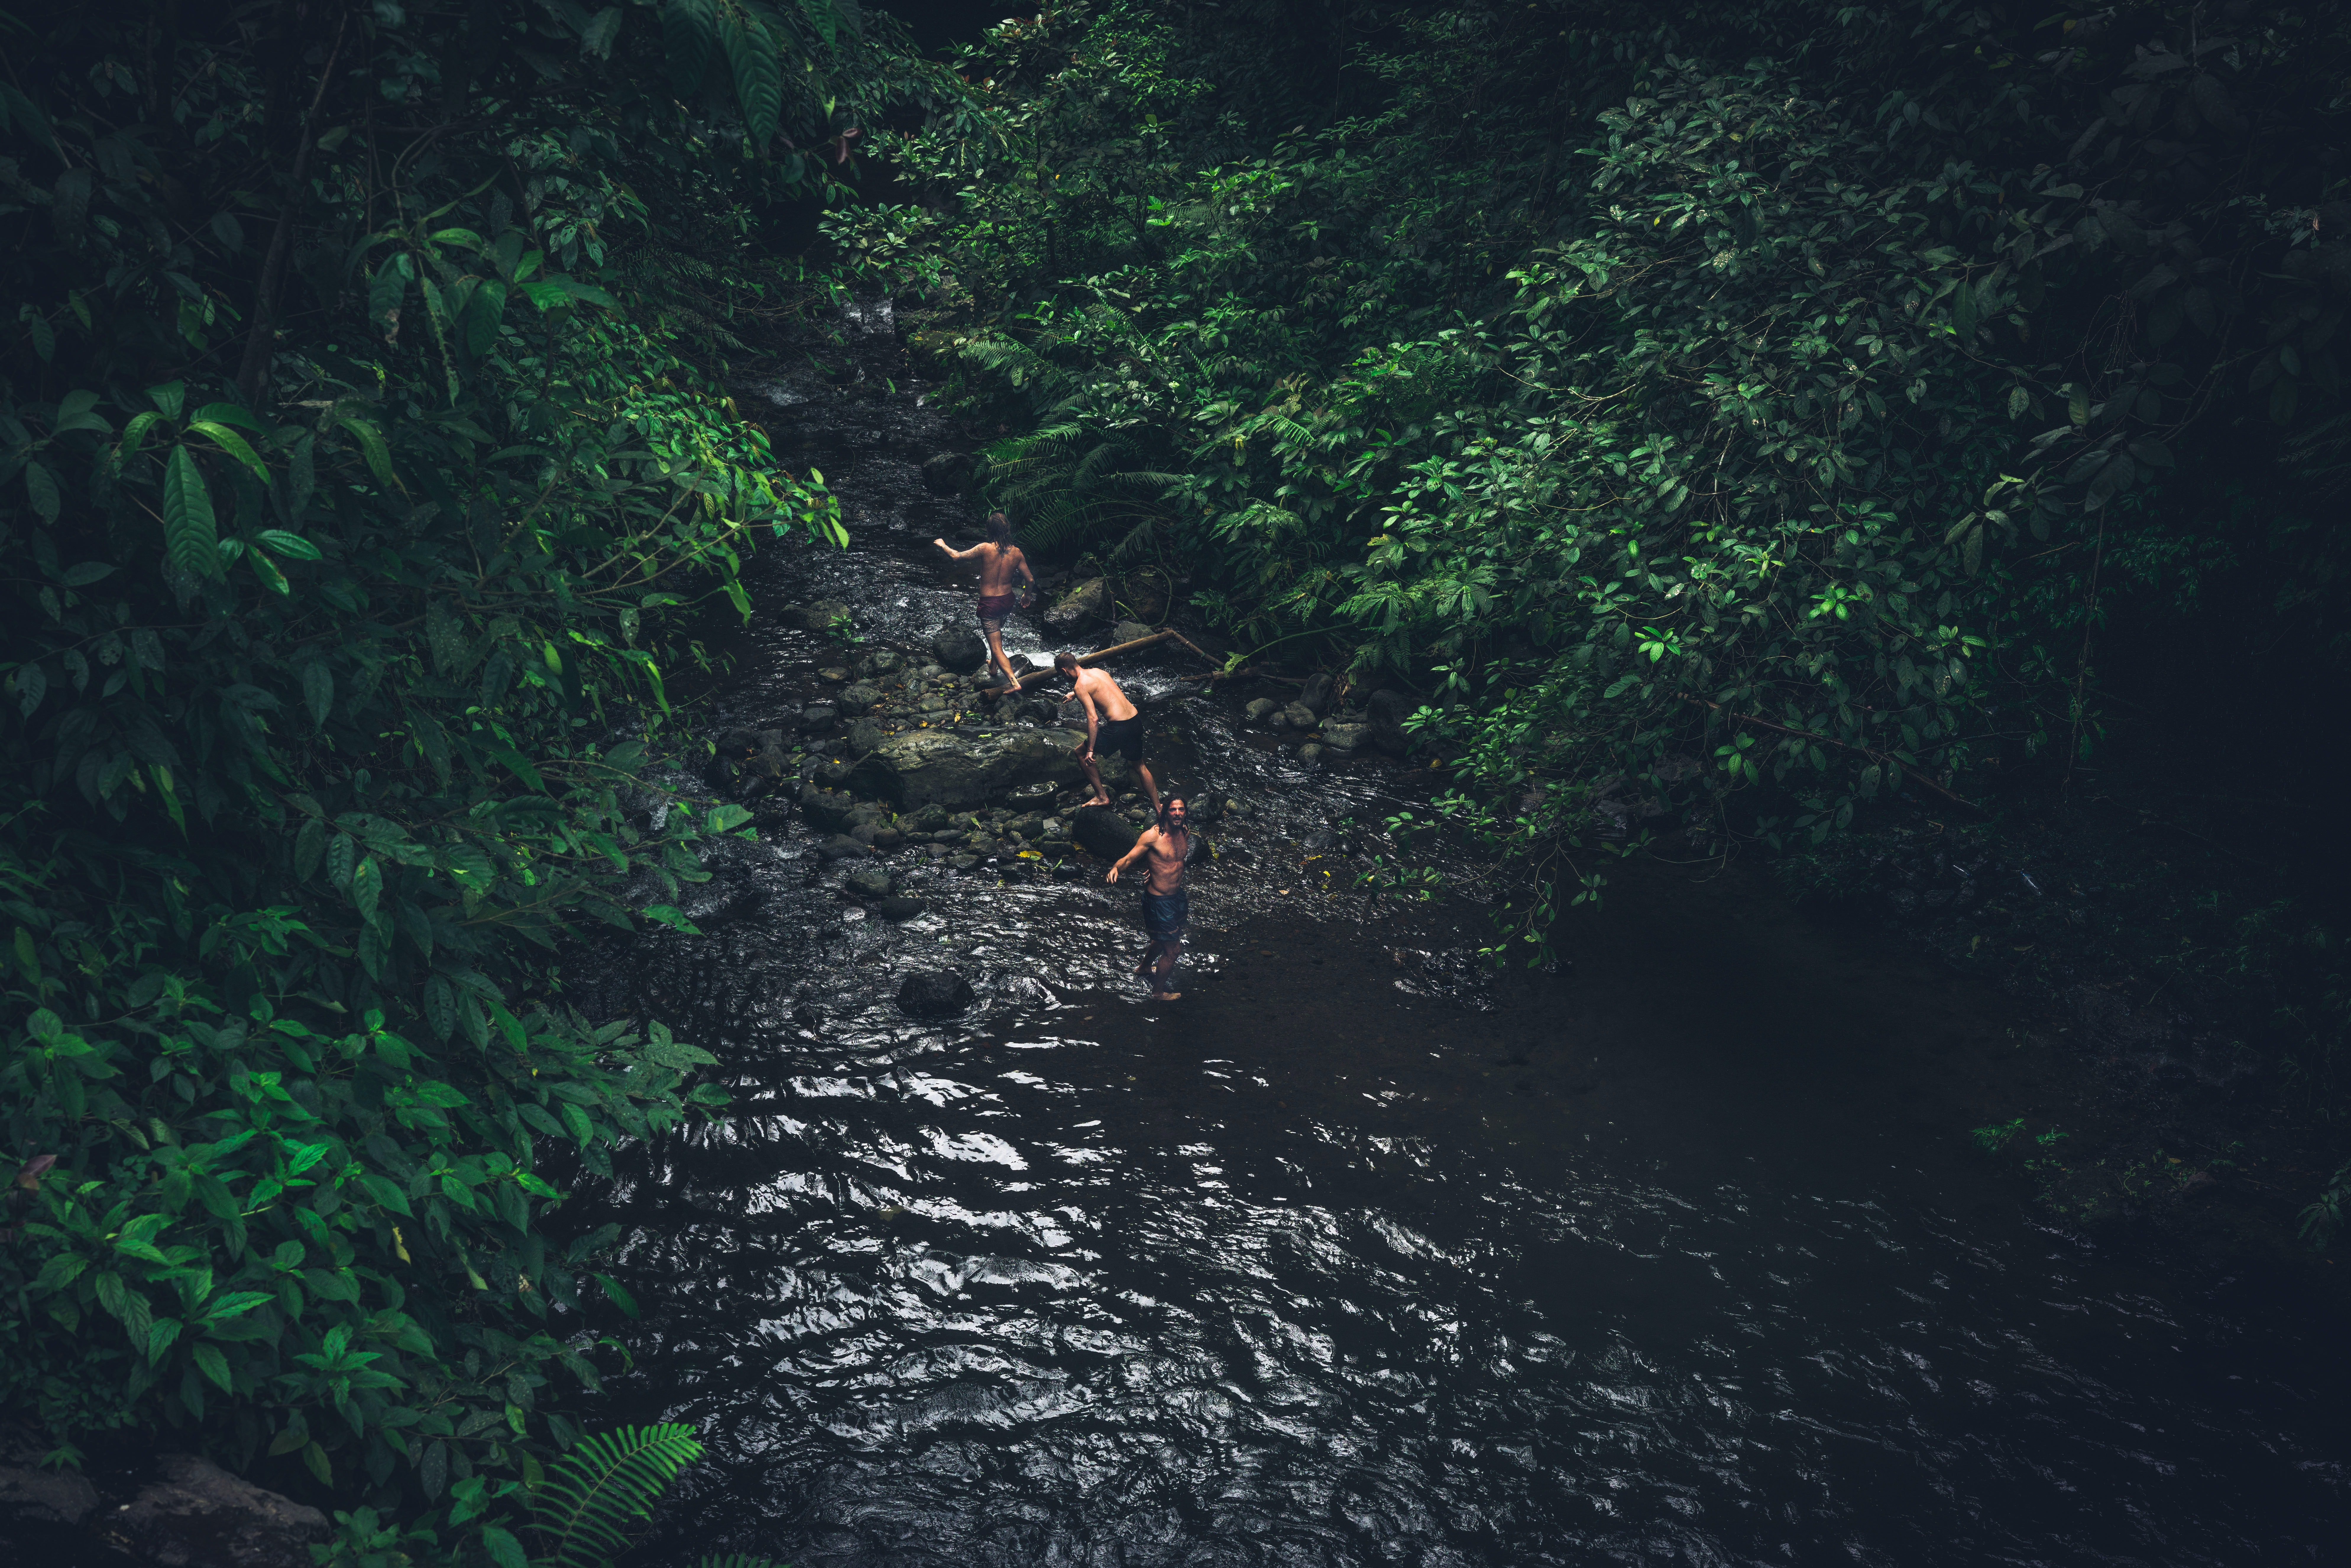 A group of shirtless male friends climbing some river rocks and into a forest of trees